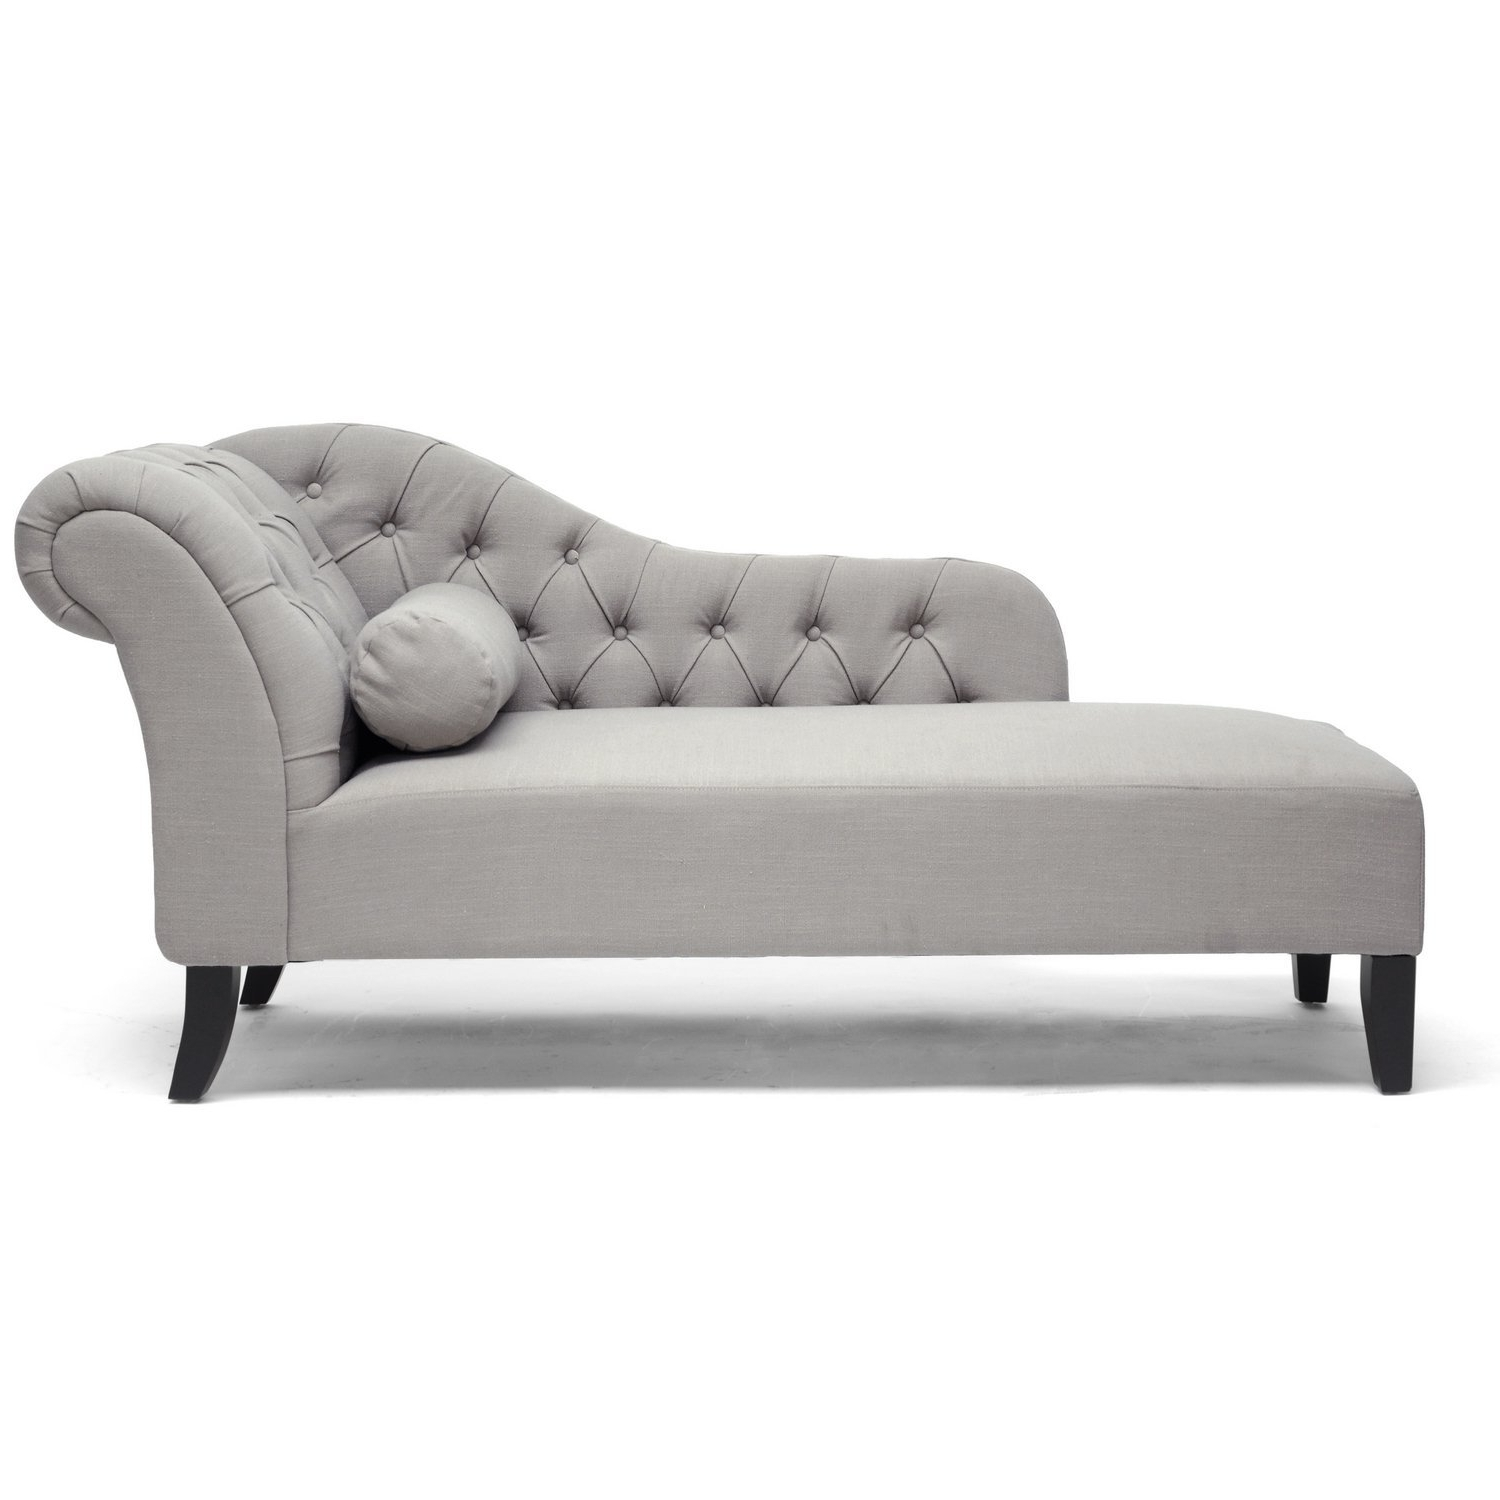 Kids Chaise Lounges intended for Most Current Amazon: Baxton Studio Aphrodite Tufted Putty Linen Modern